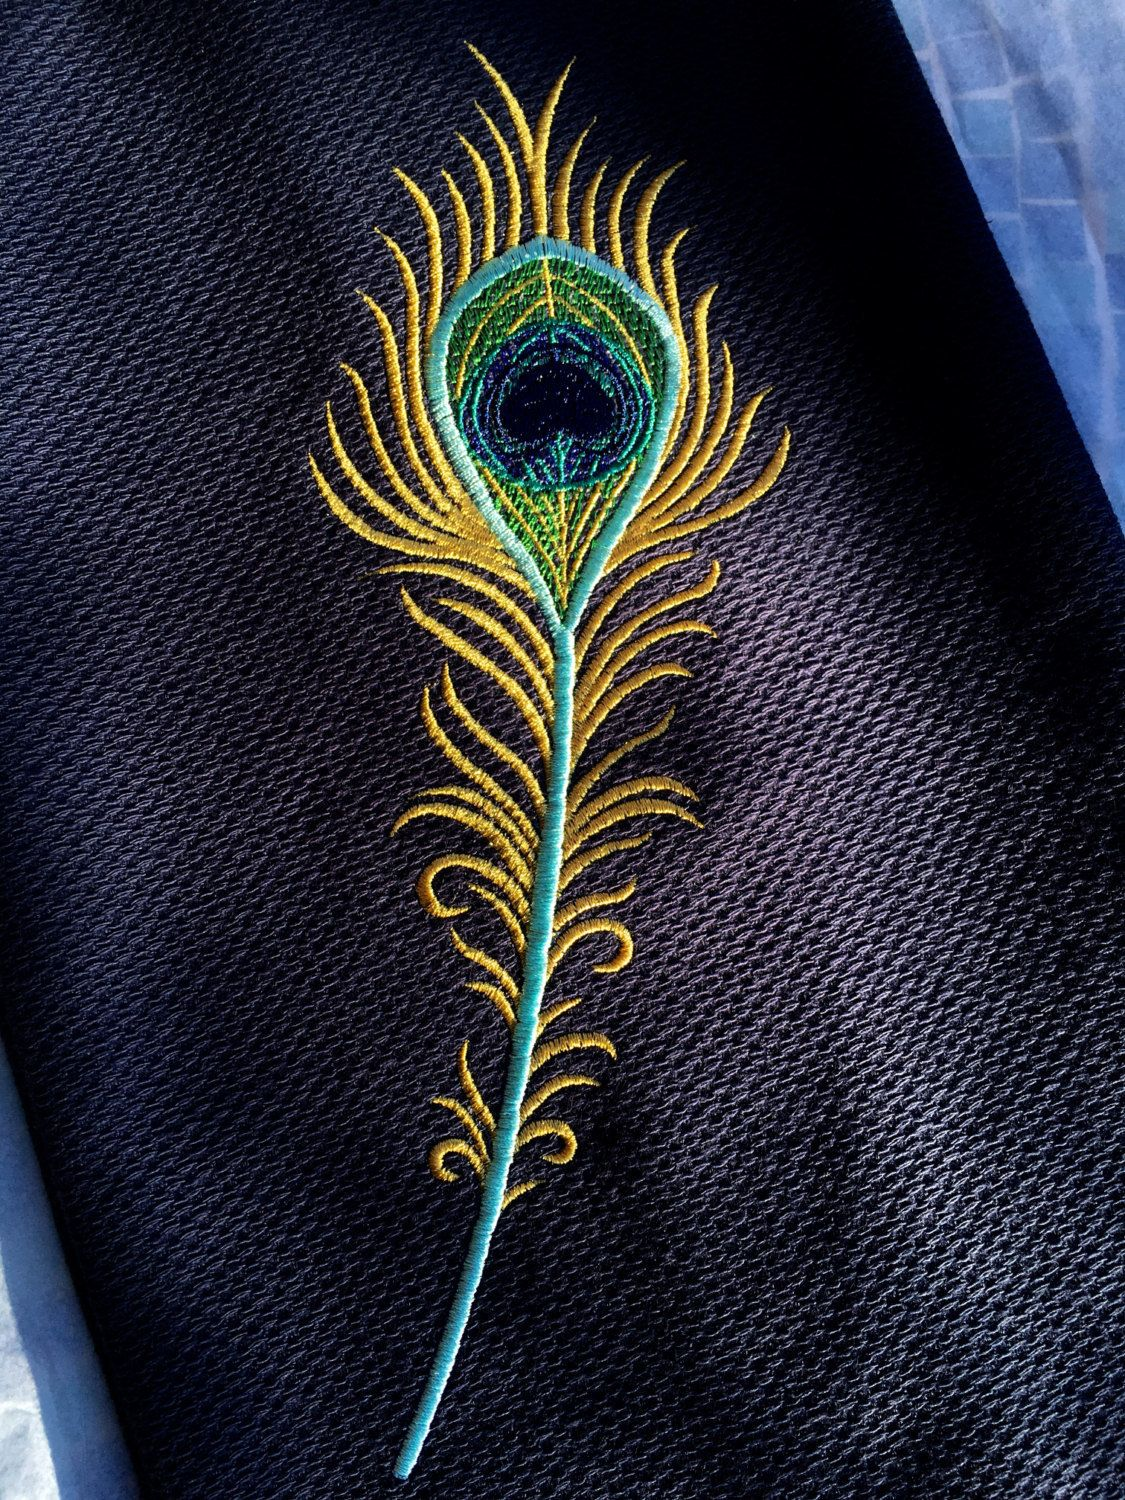 Welcome To Our Internet Embroidery Store  Machine Embroidery Designs Here  You Will Find Exclusive